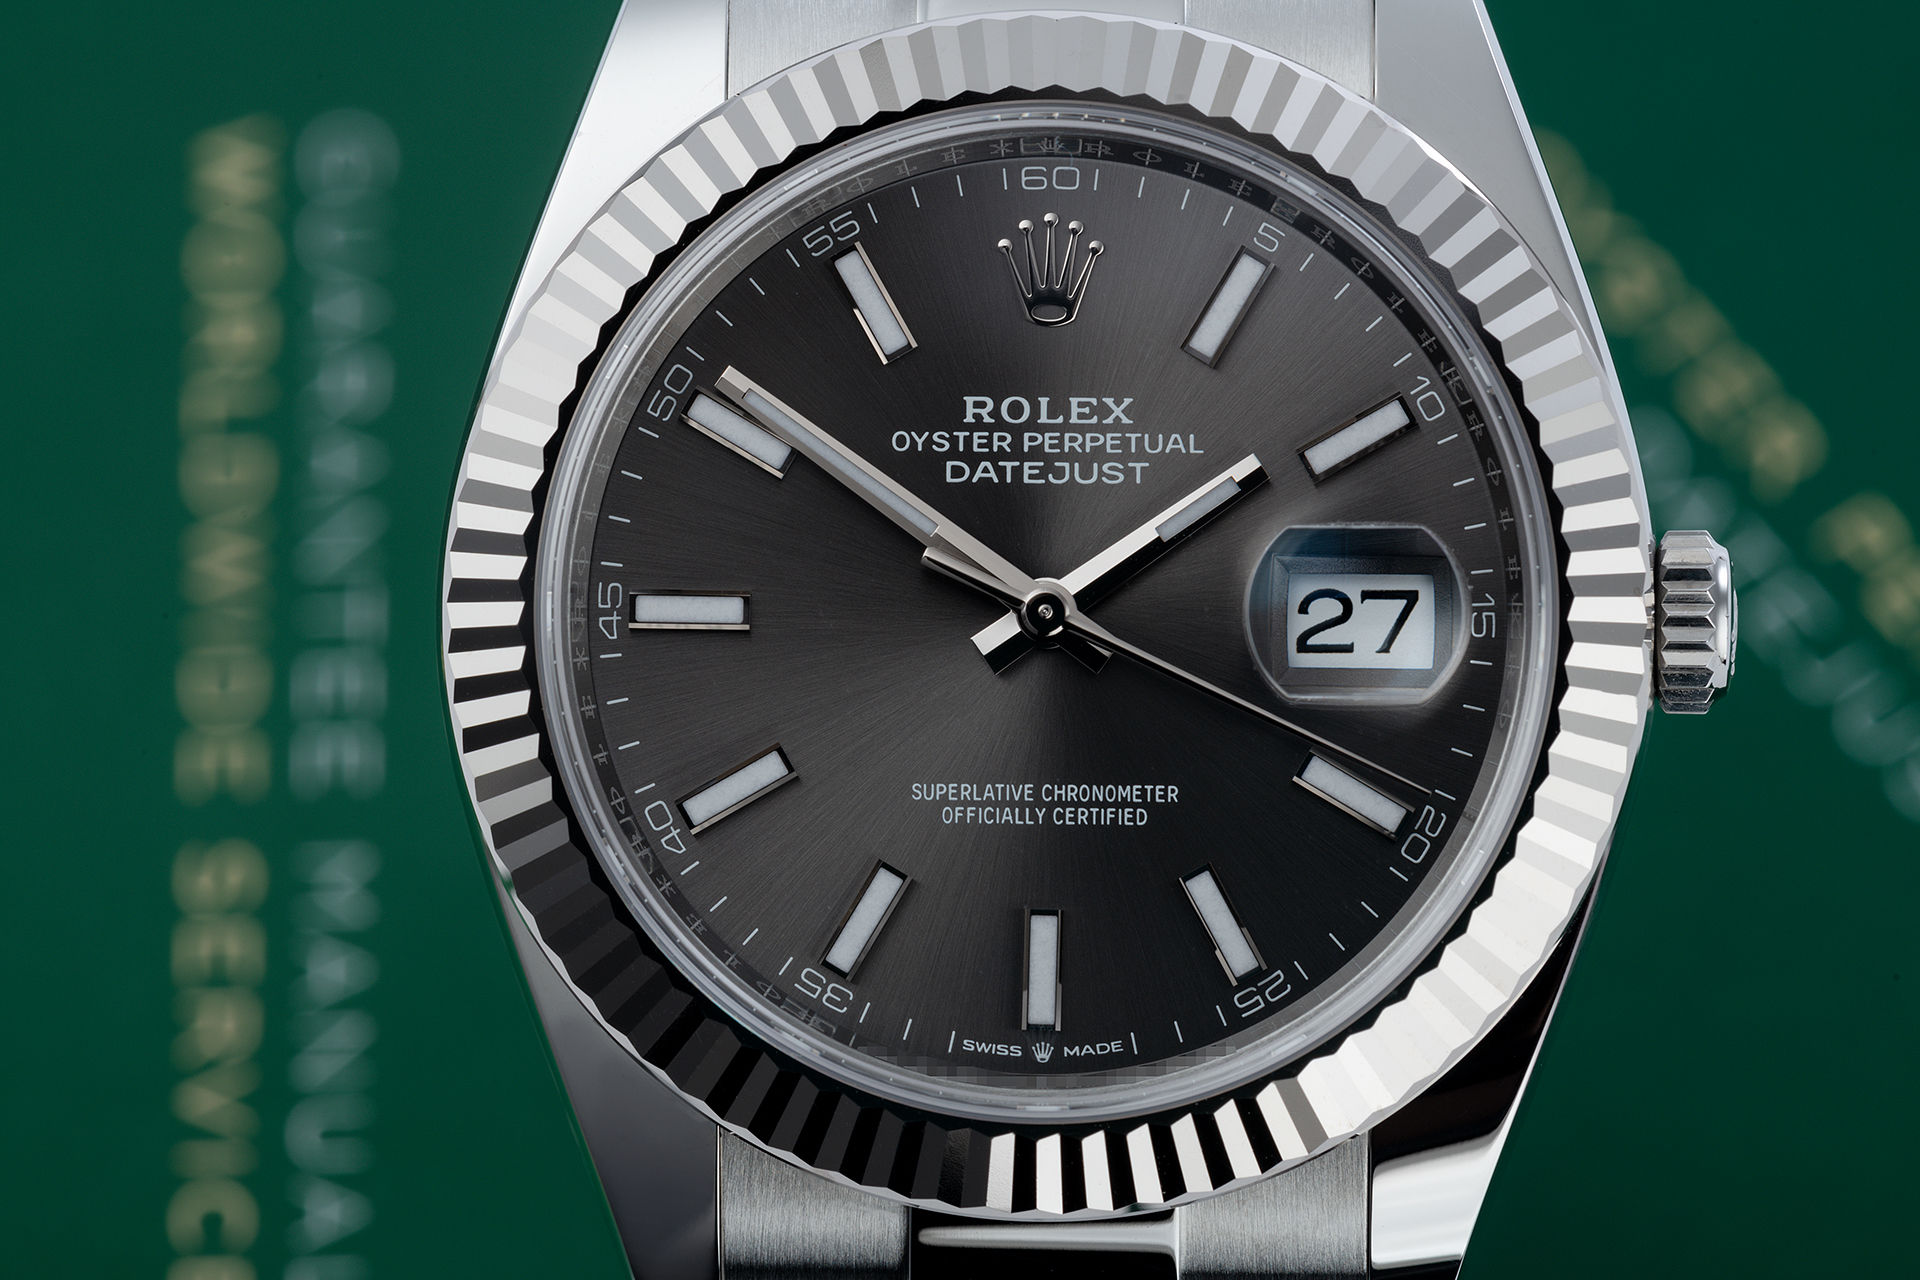 ref 126334 | 'New Calibre' Latest Model | Rolex Datejust 41